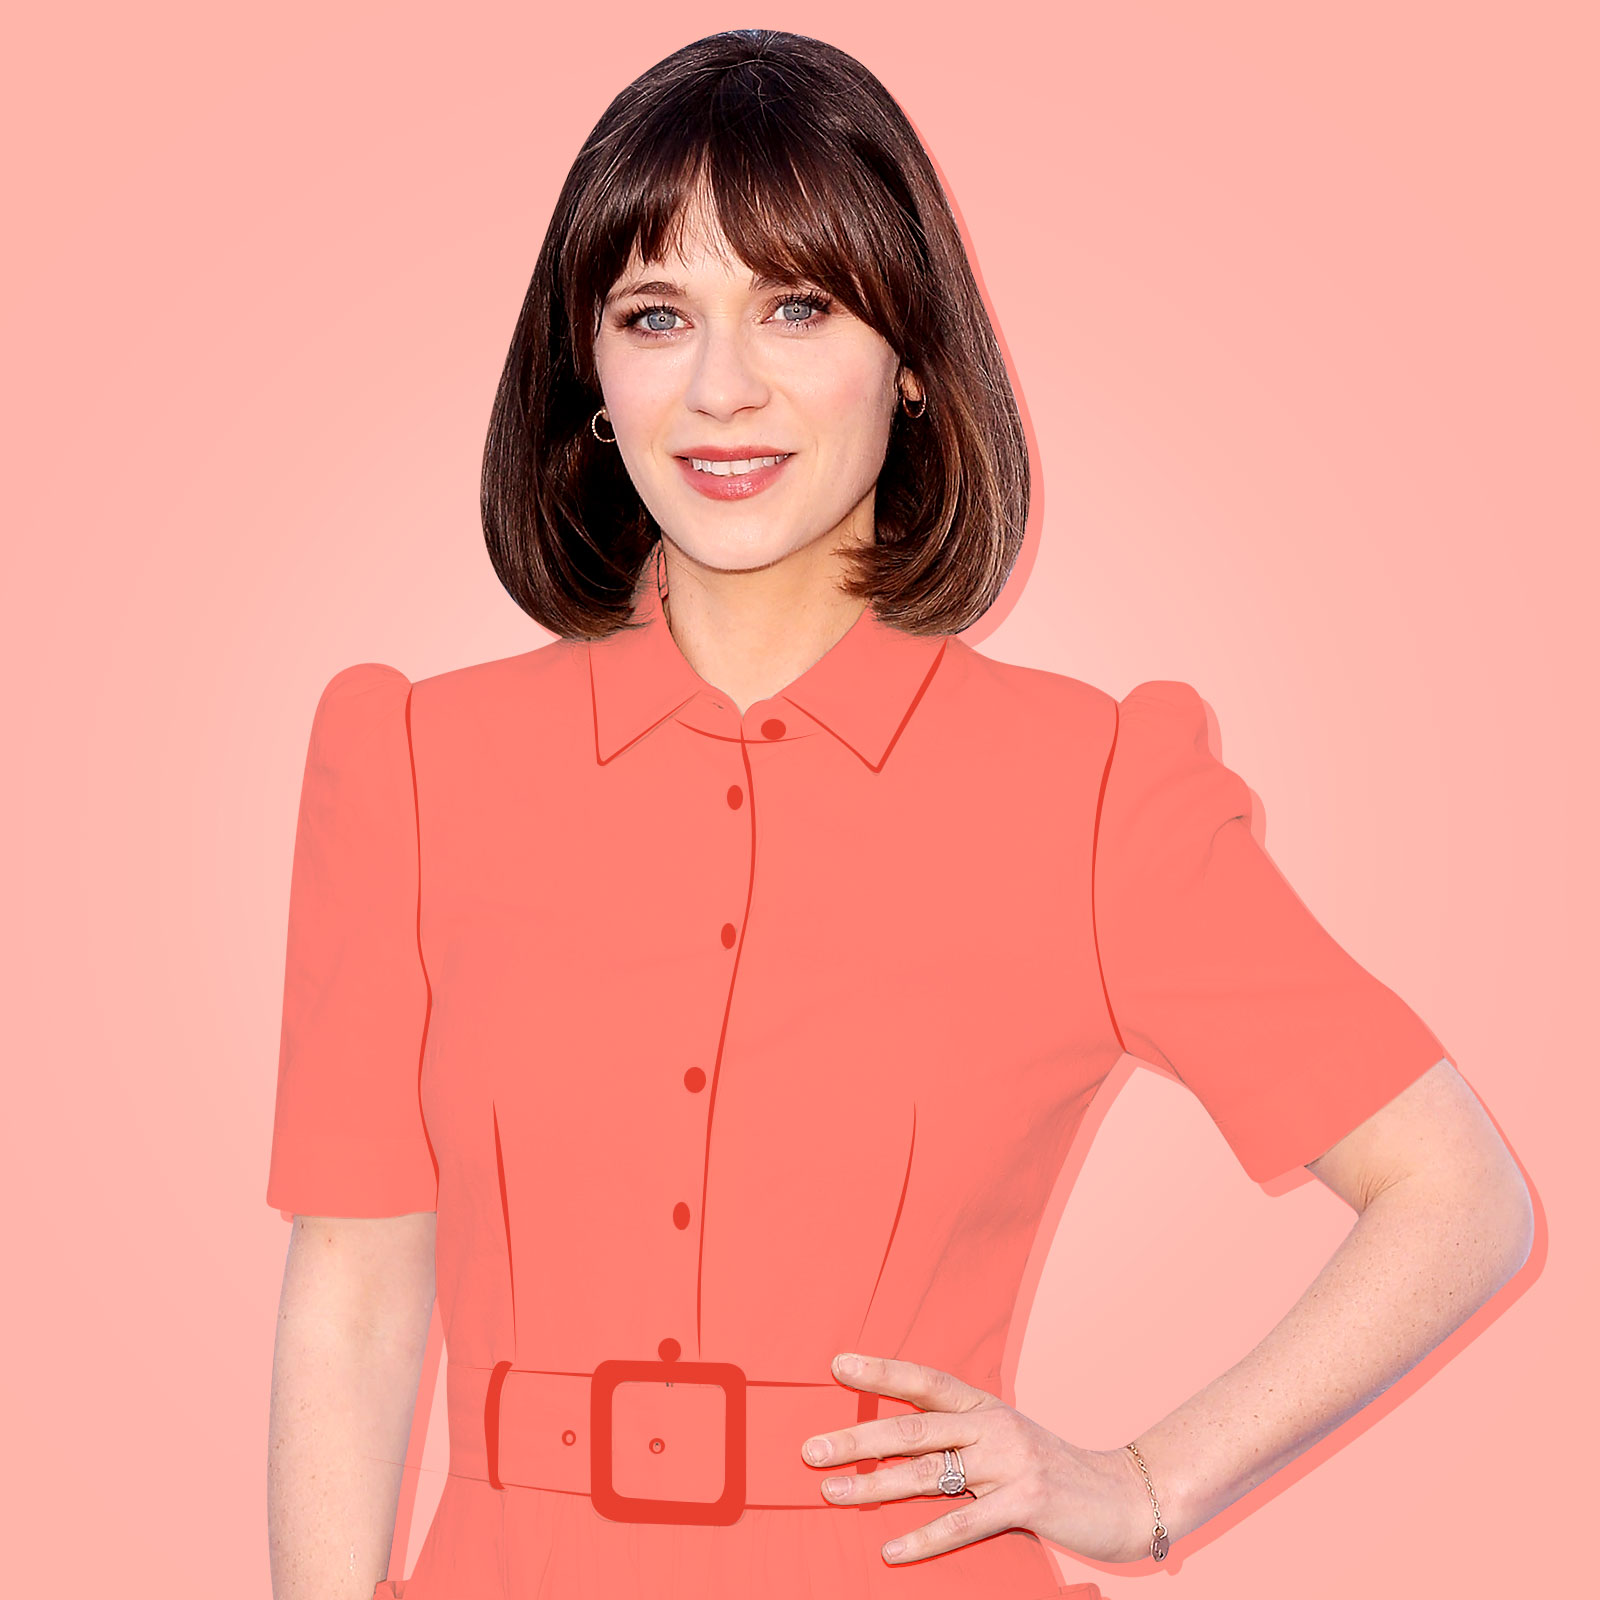 Here's Why You Haven't Seen Zooey Deschanel Onscreen in a While